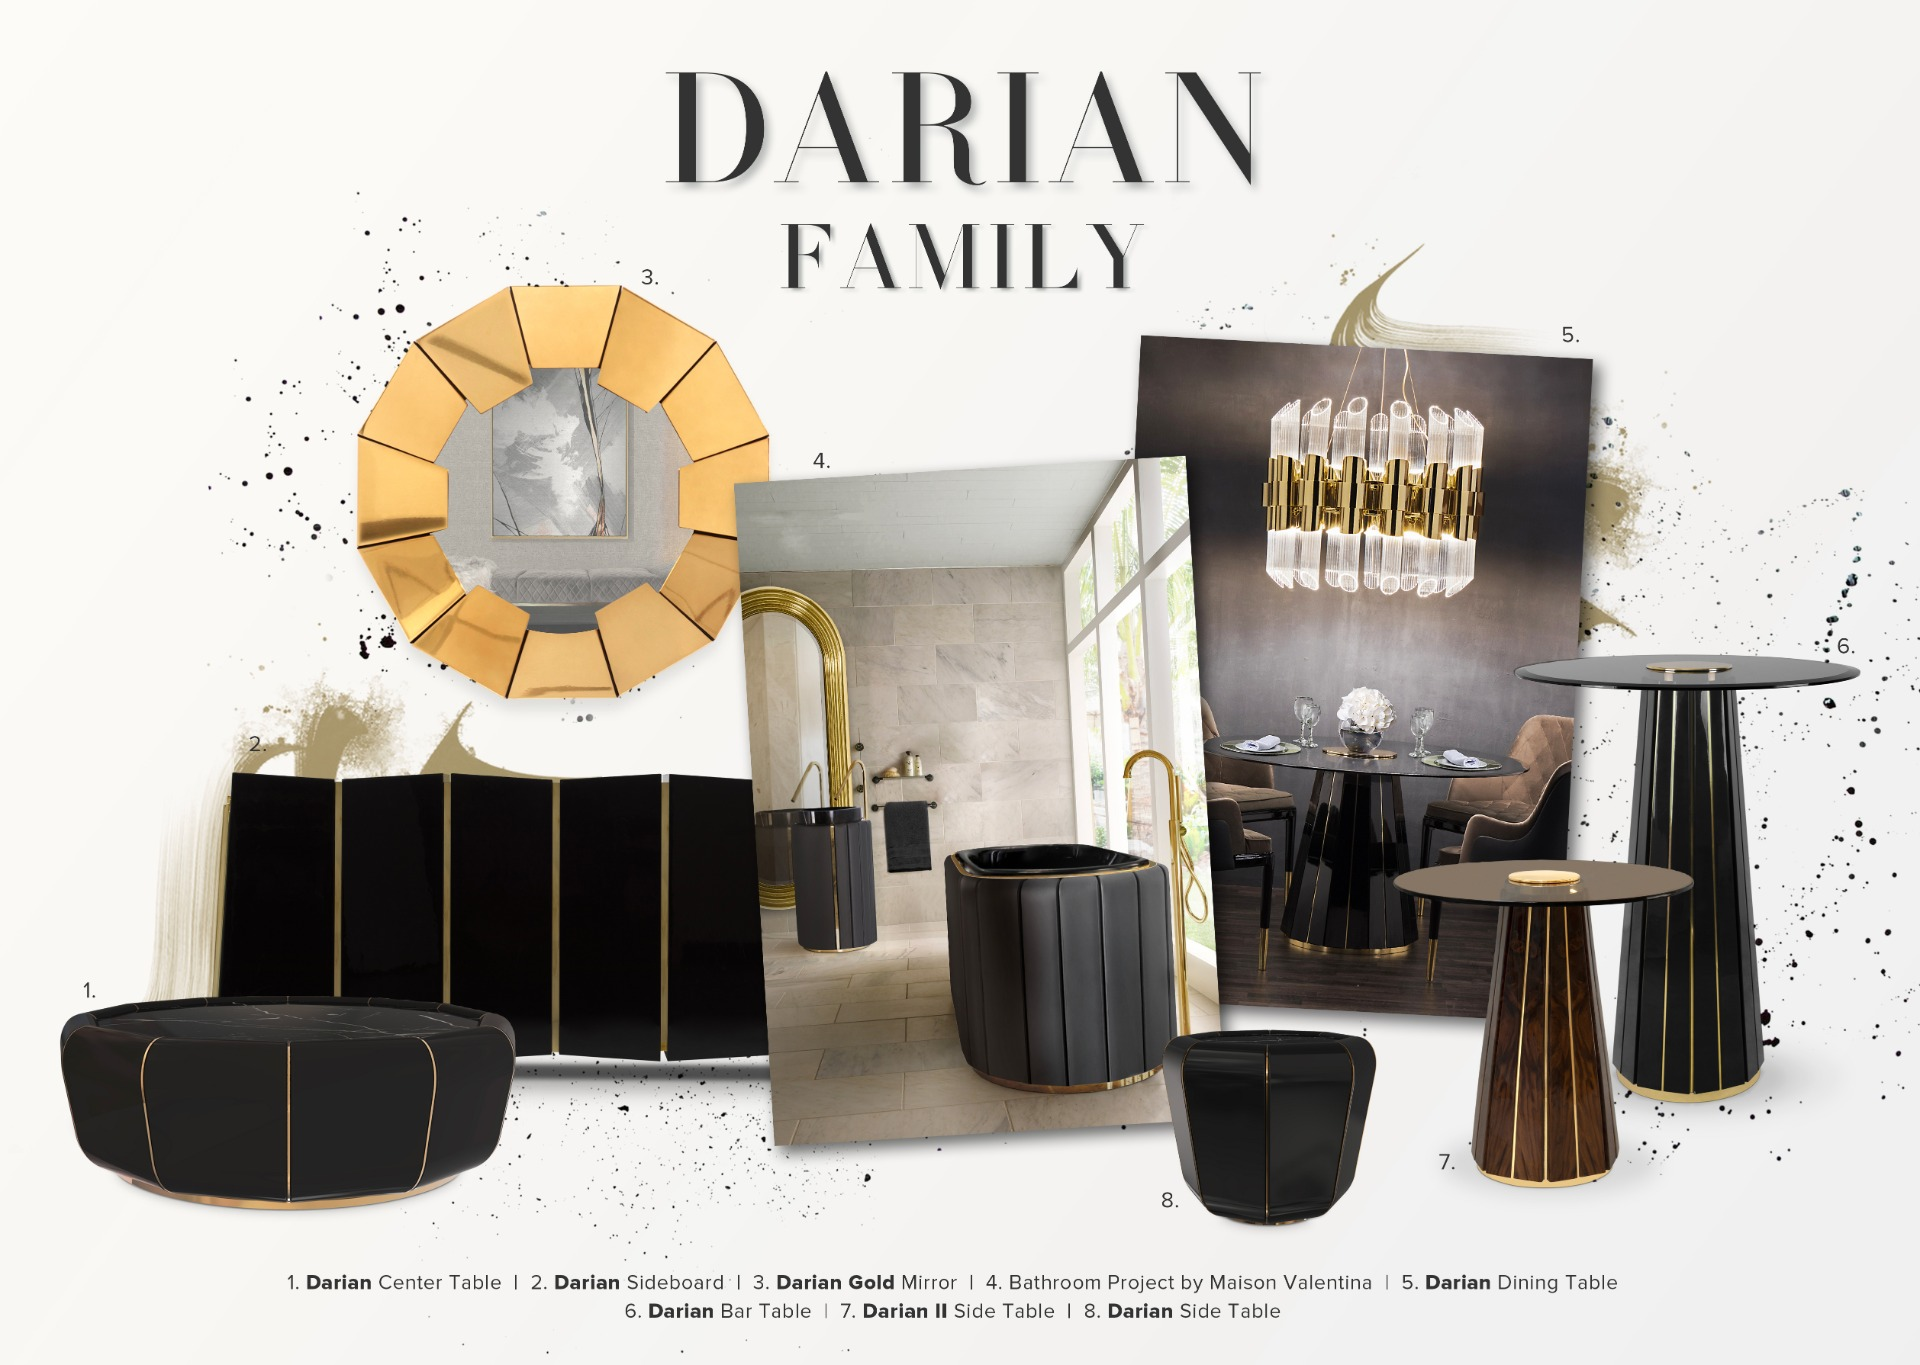 Exquisite Families: The Darian Lineage